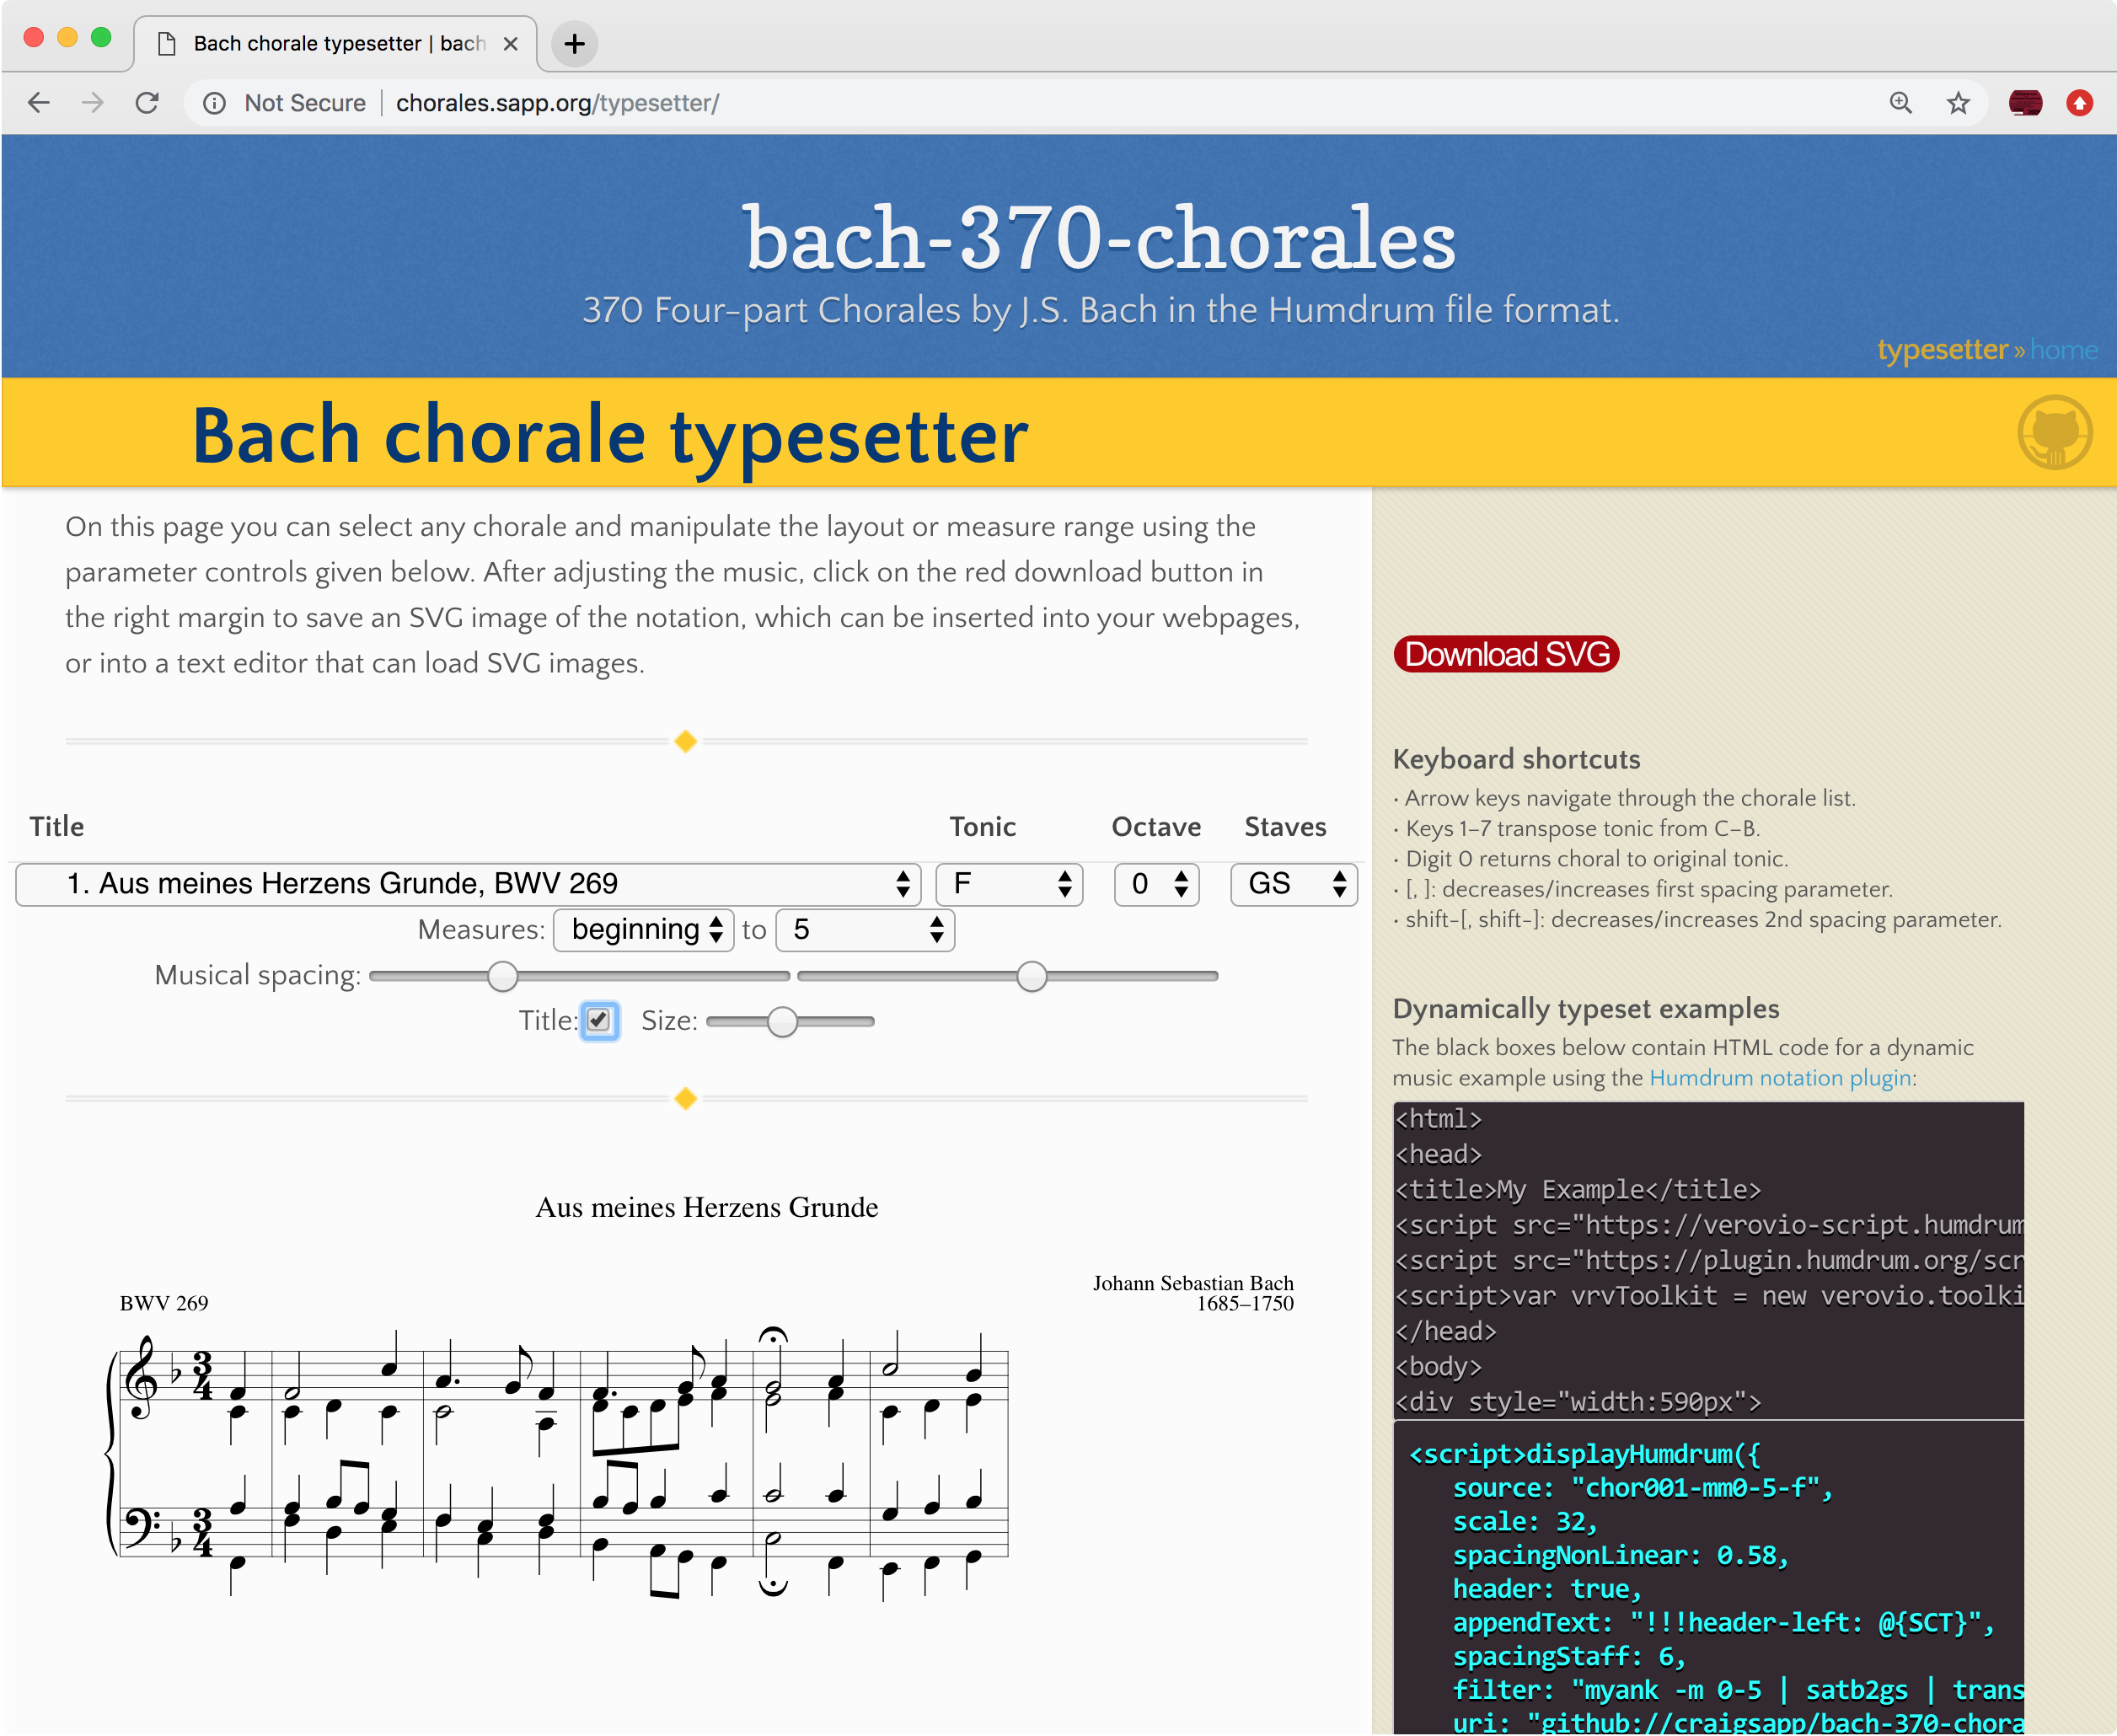 Bach chorale typesetter